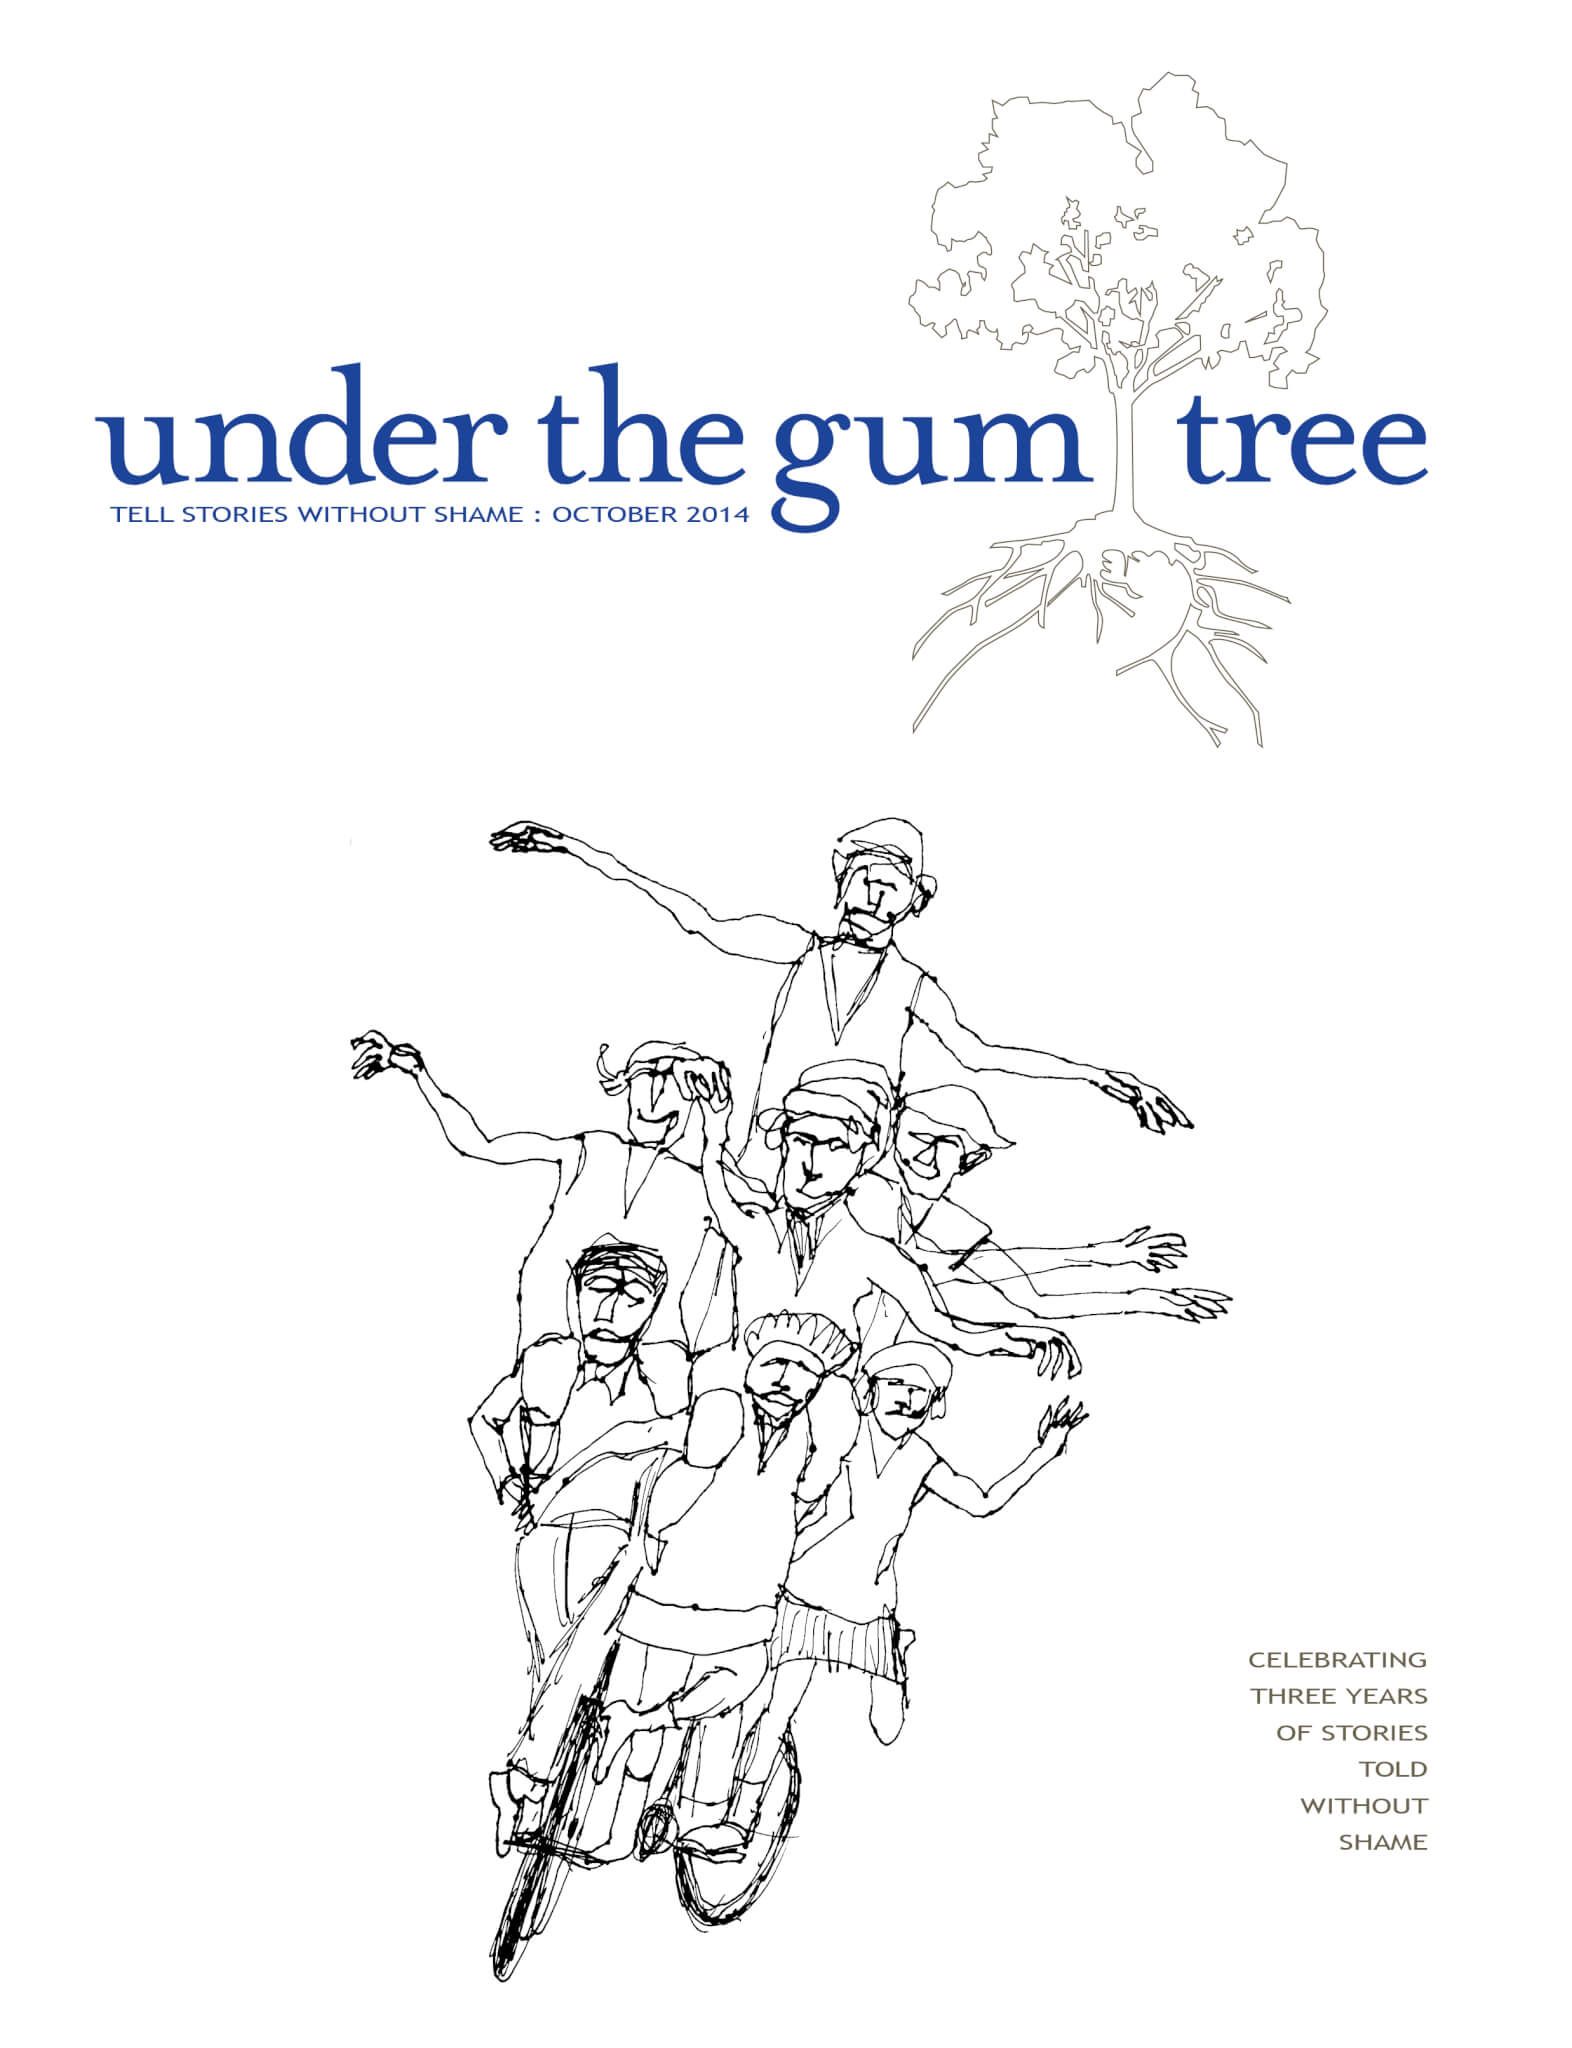 Storytelling & Patronage: On the 3-year Anniversary of Under the Gum Tree